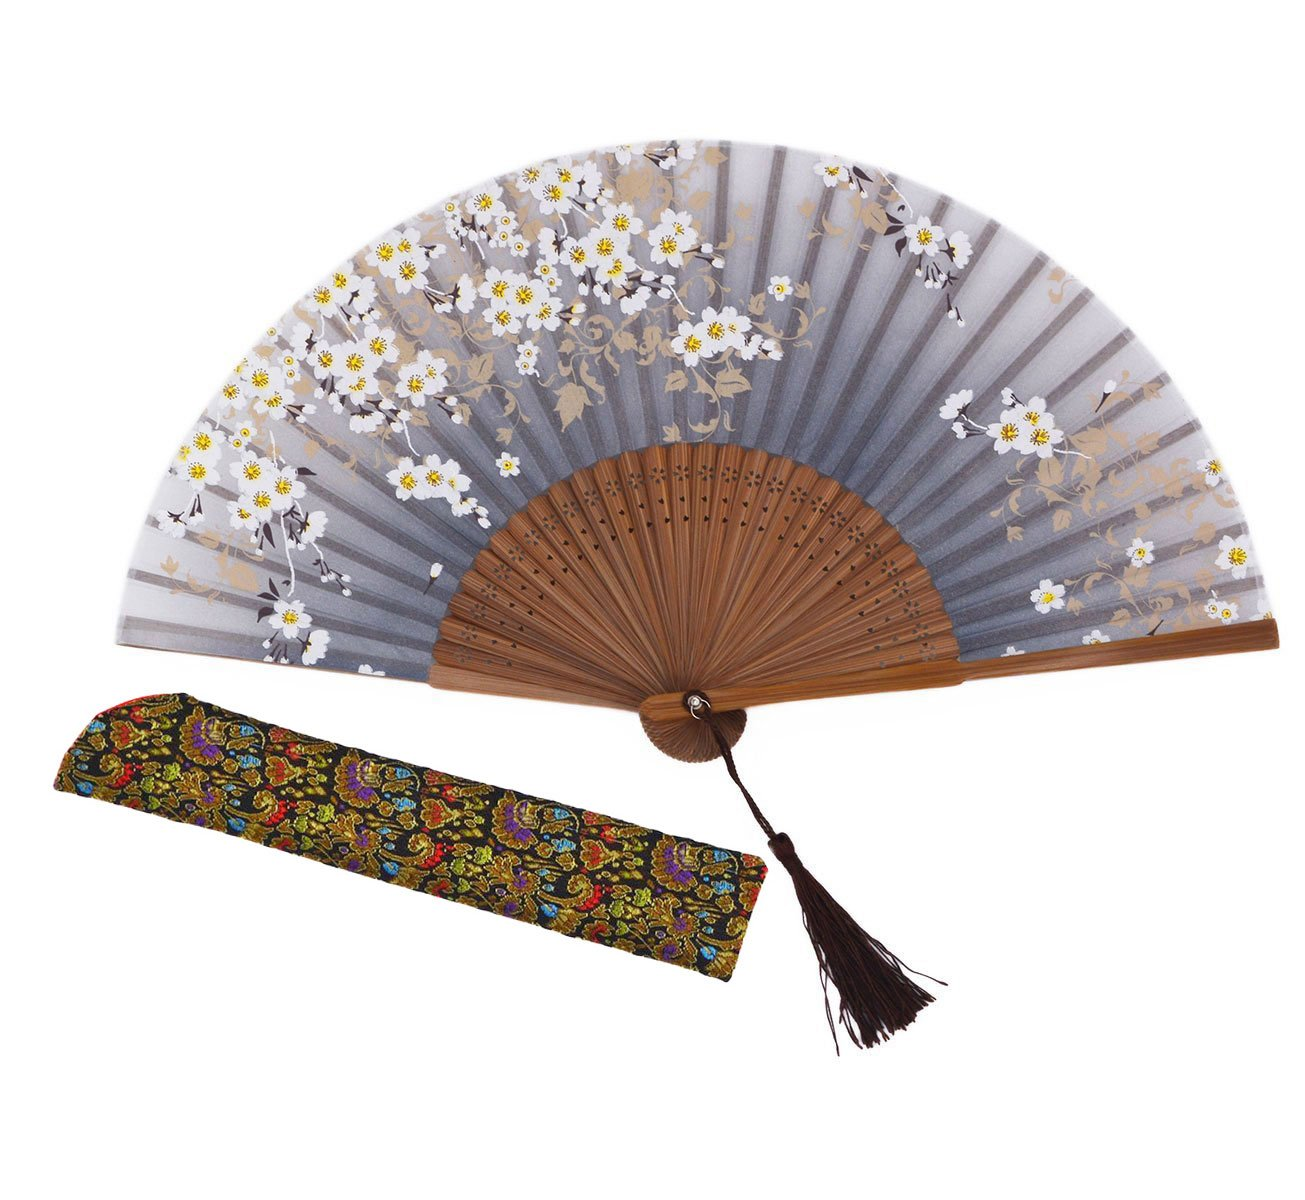 Amajiji Charming Elegant Modern Woman Handmade Bamboo Silk 8.27'' (21cm) Folding Pocket Purse Hand Fan, Collapsible Transparent Holding Painted Fan with Silk Pouches/ Wrapping. (CZT-06)